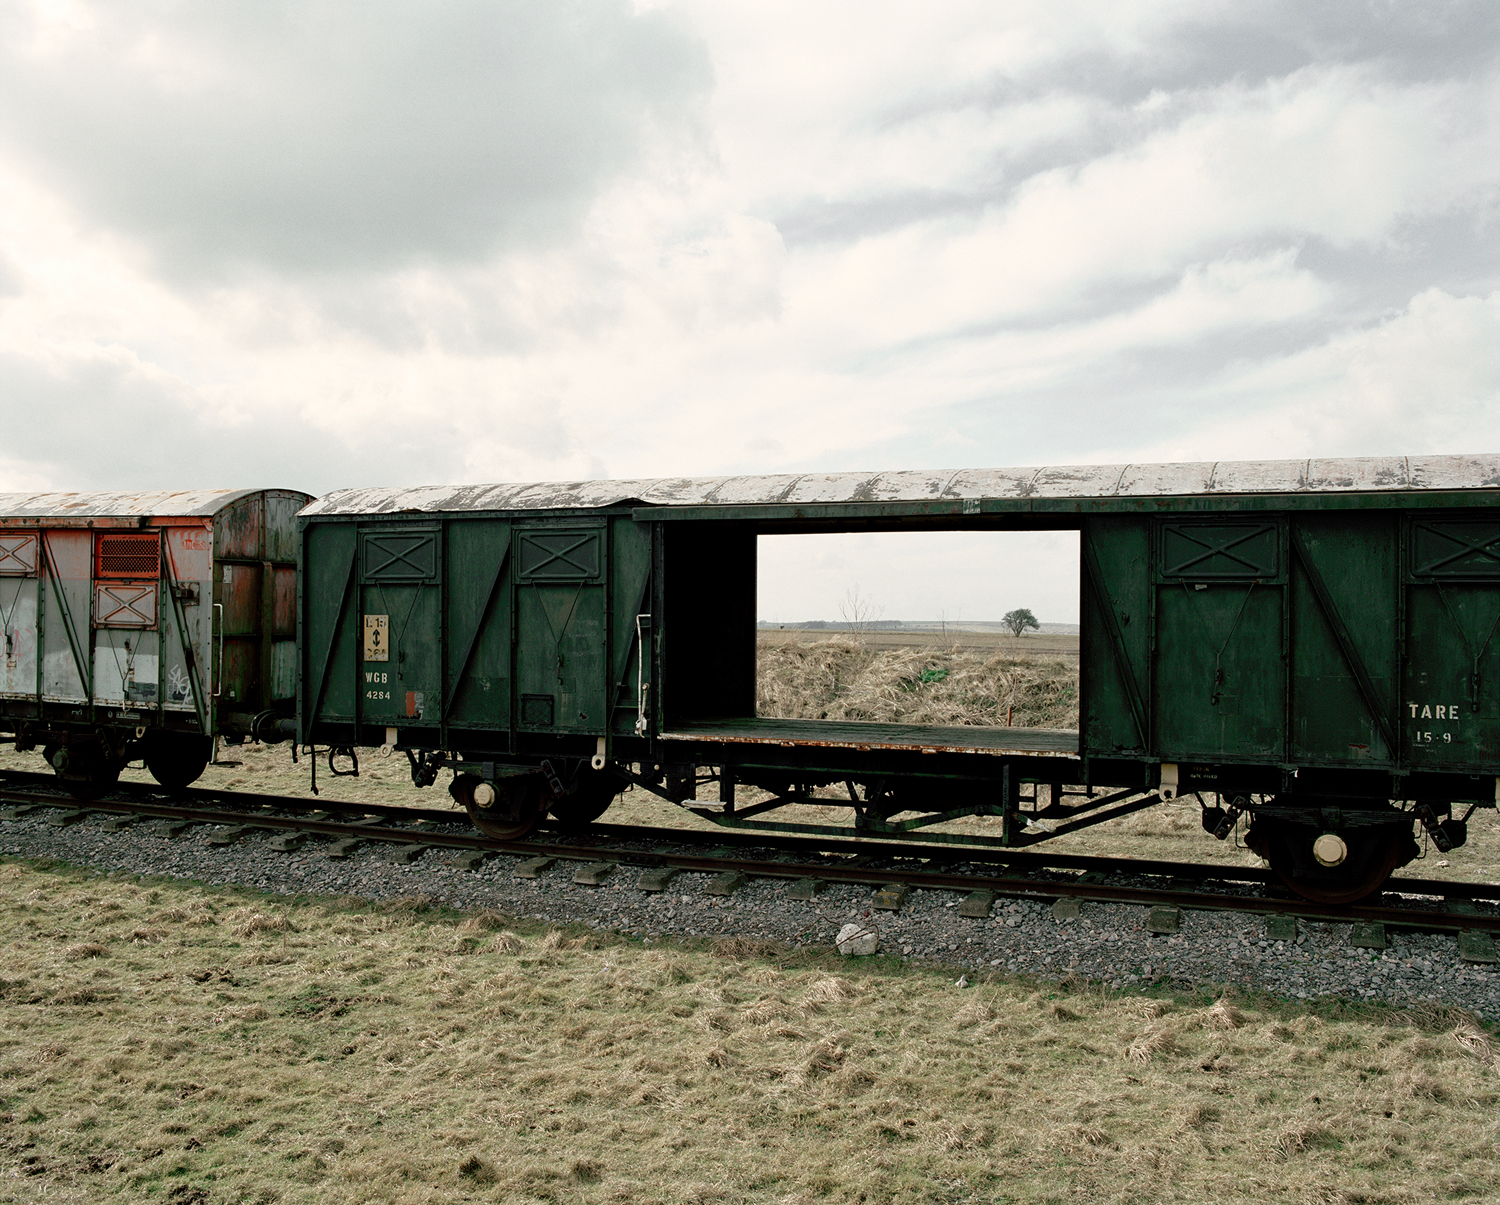 Train Carriages, Copehill Down, 2006